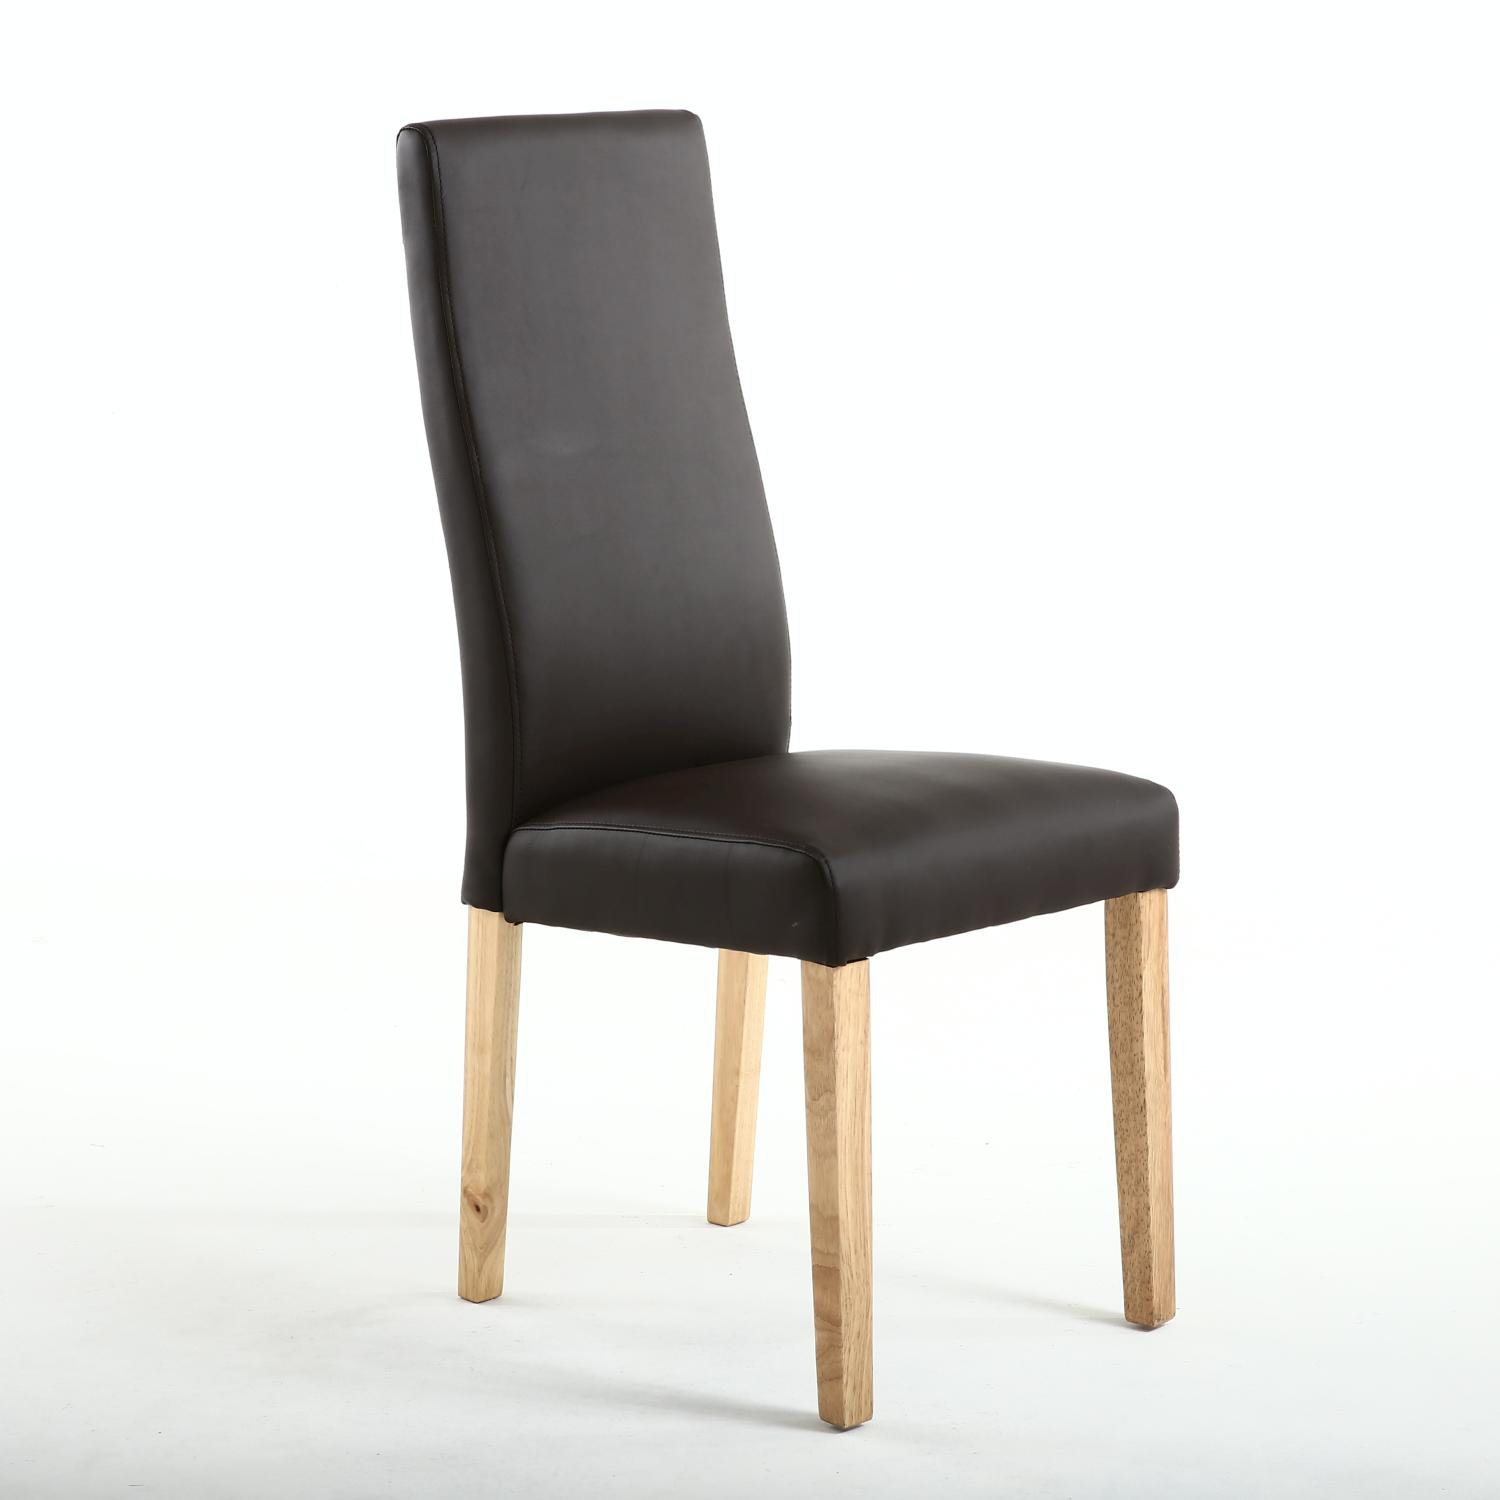 'Shankar Brown Matt Leather Dining Chair With Natural Legs